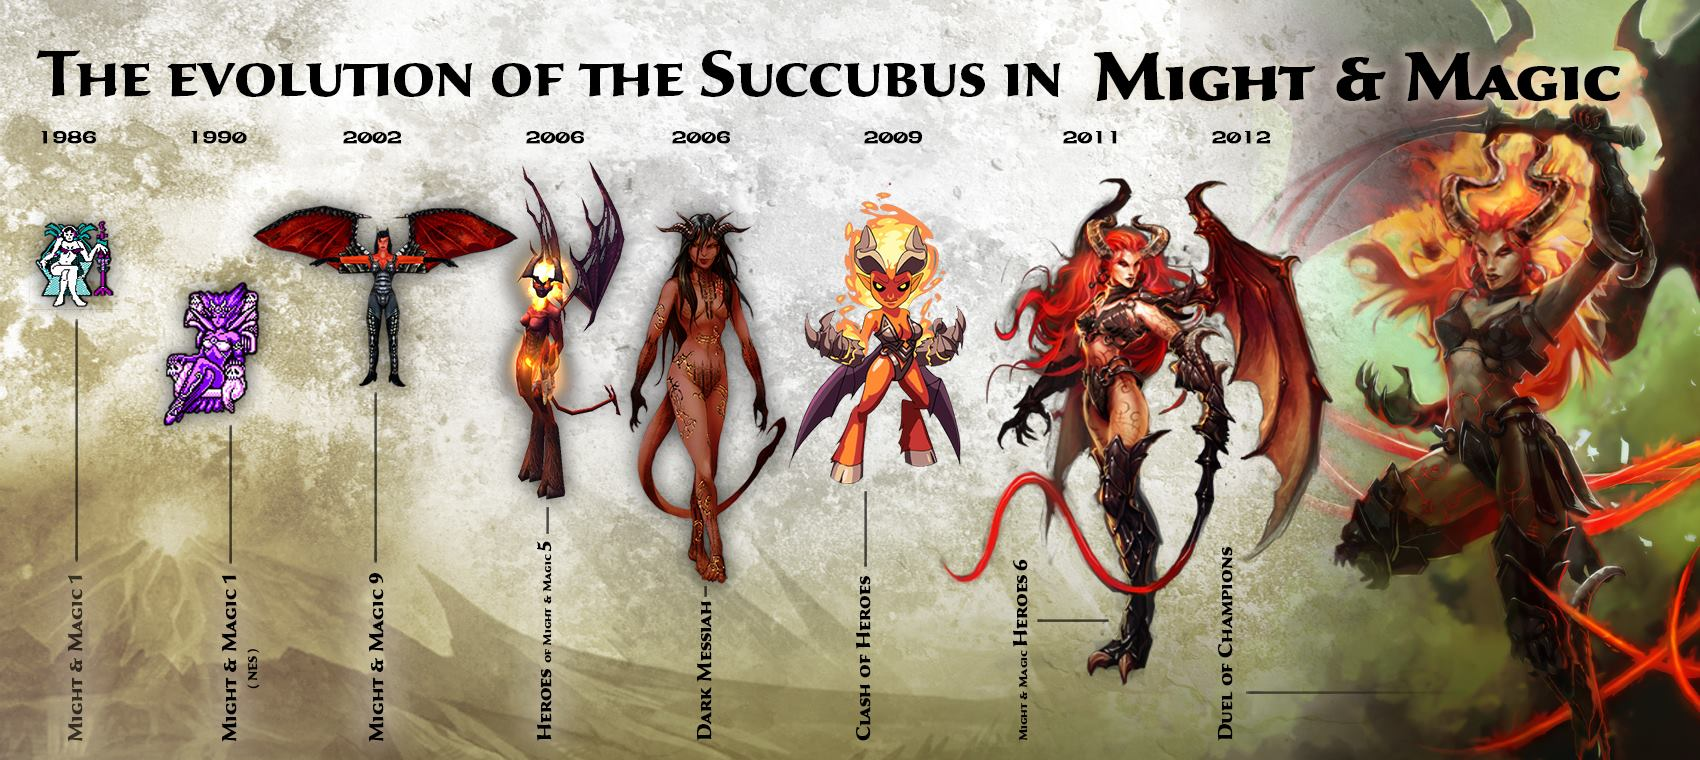 Succubus | Might and Magic Wiki | FANDOM powered by Wikia